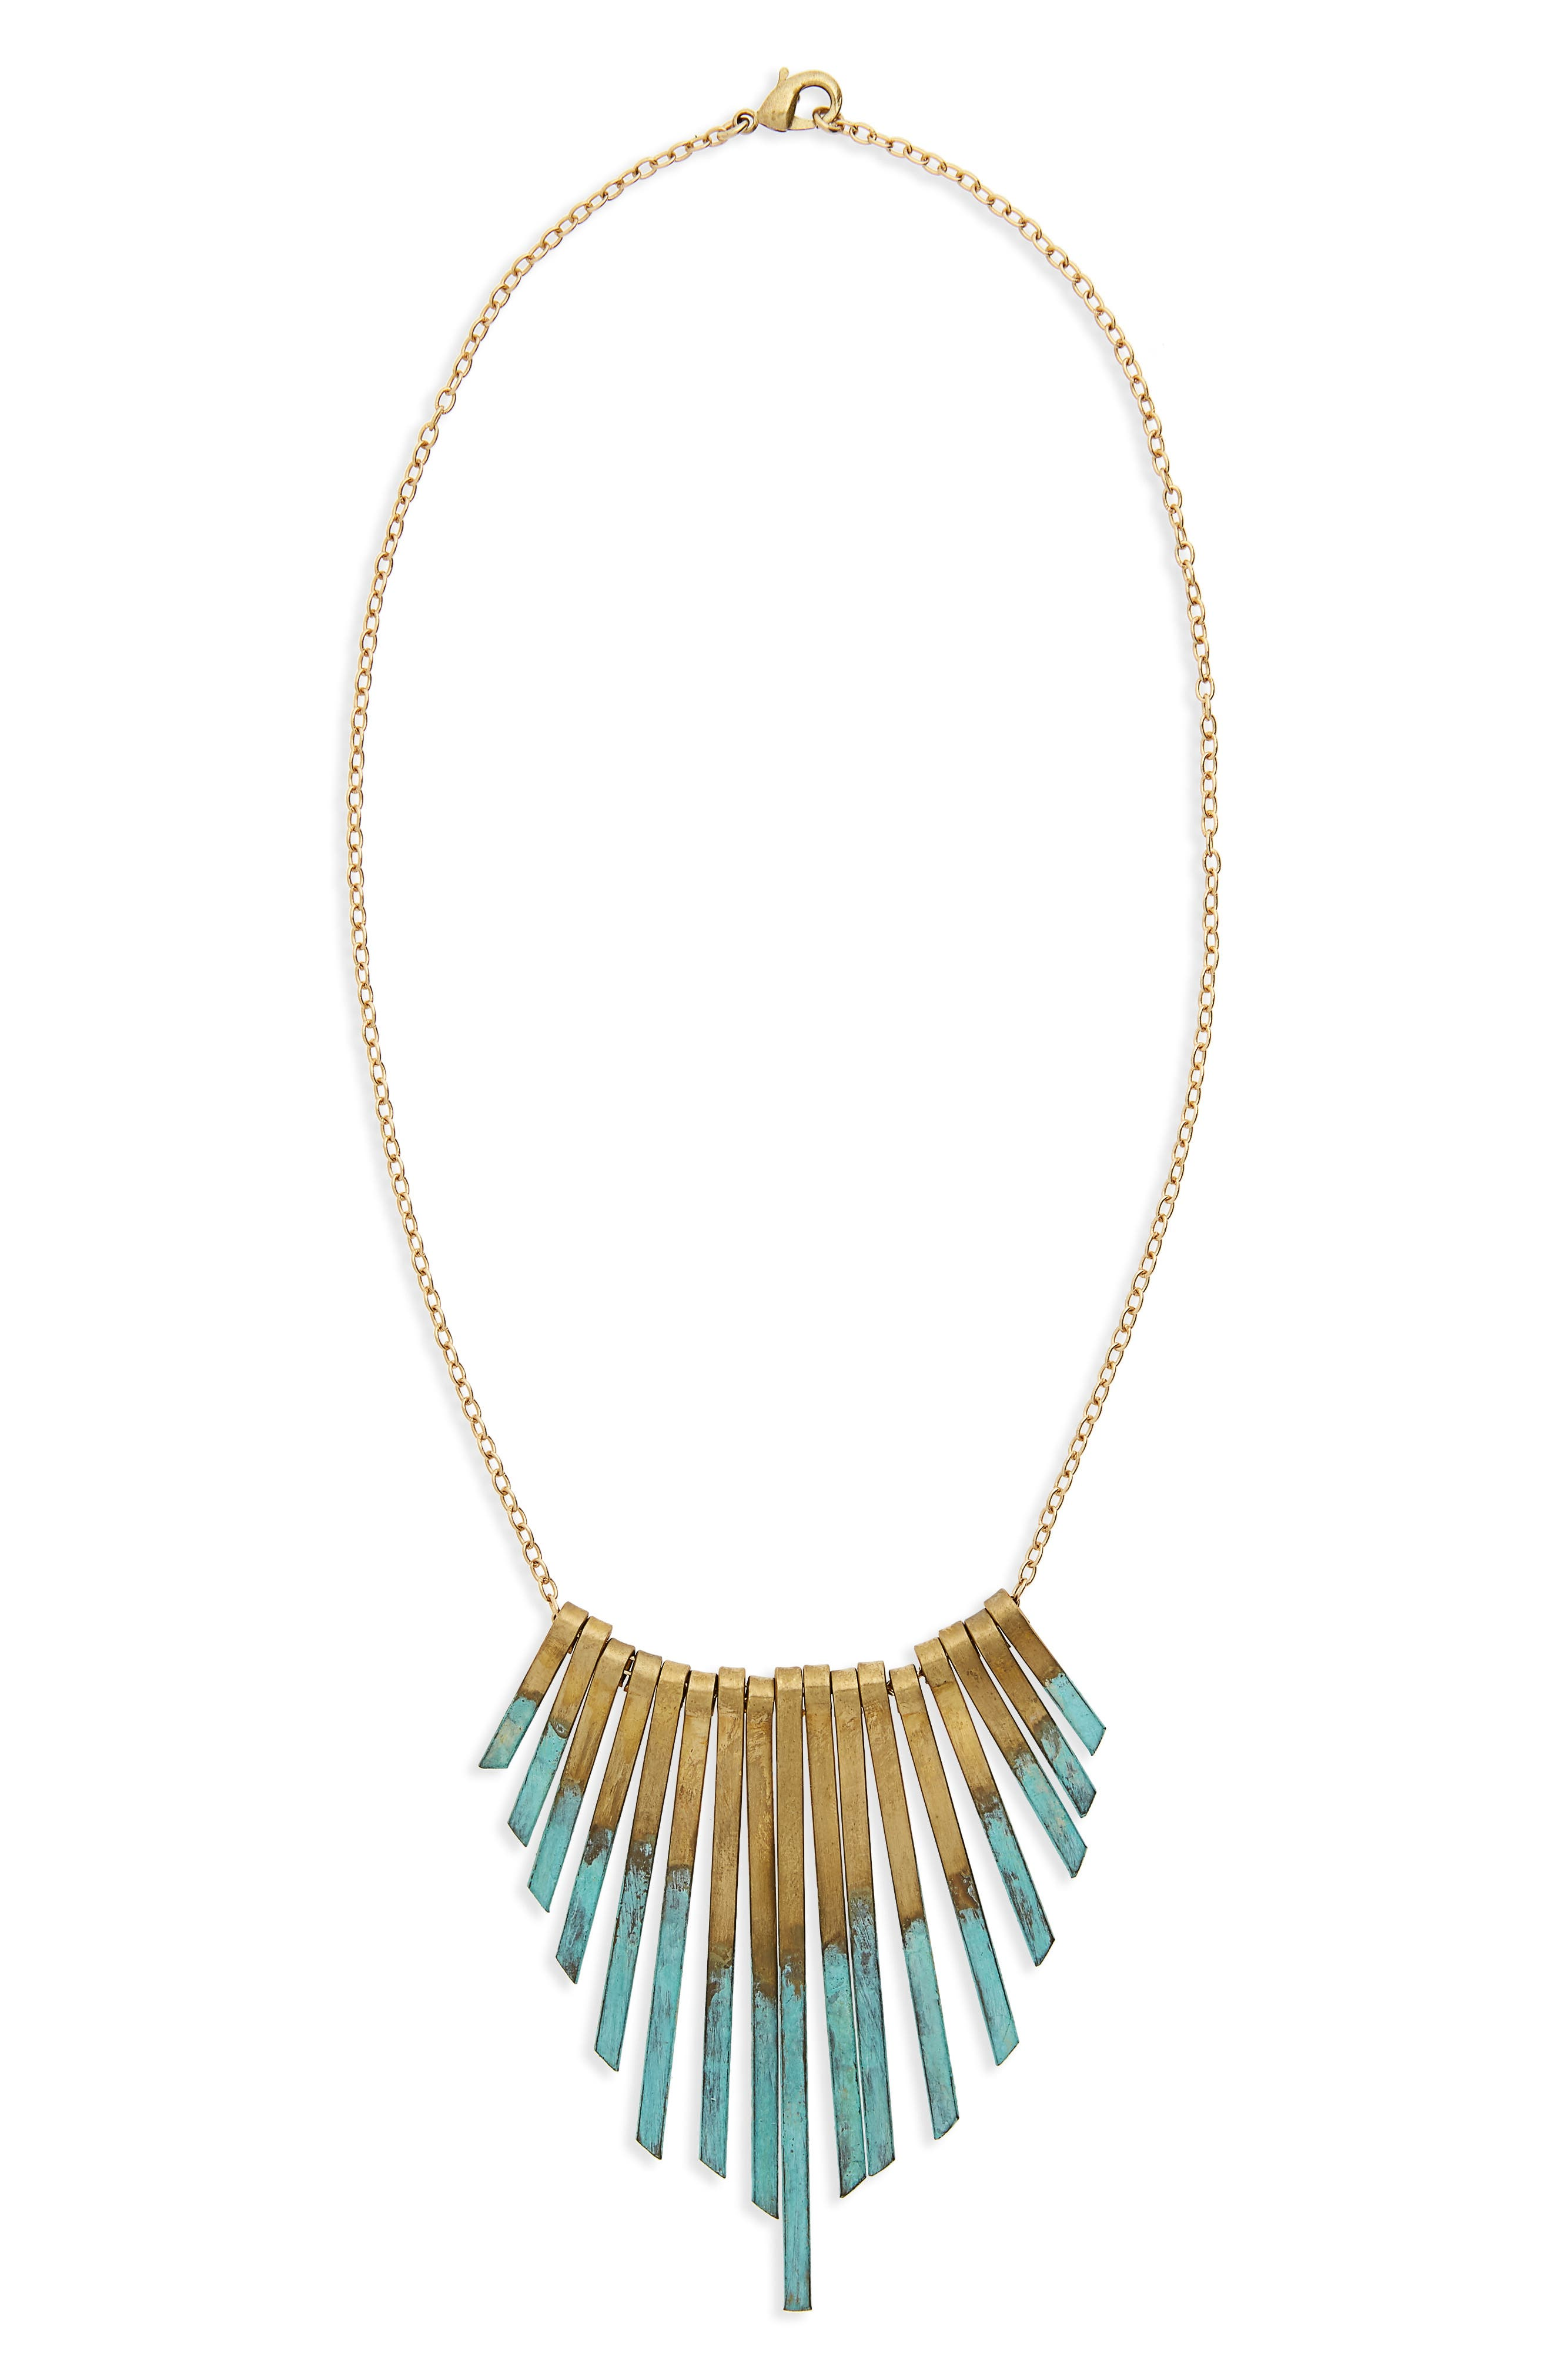 Patina Stick Necklace,                         Main,                         color, Gold/ Multi